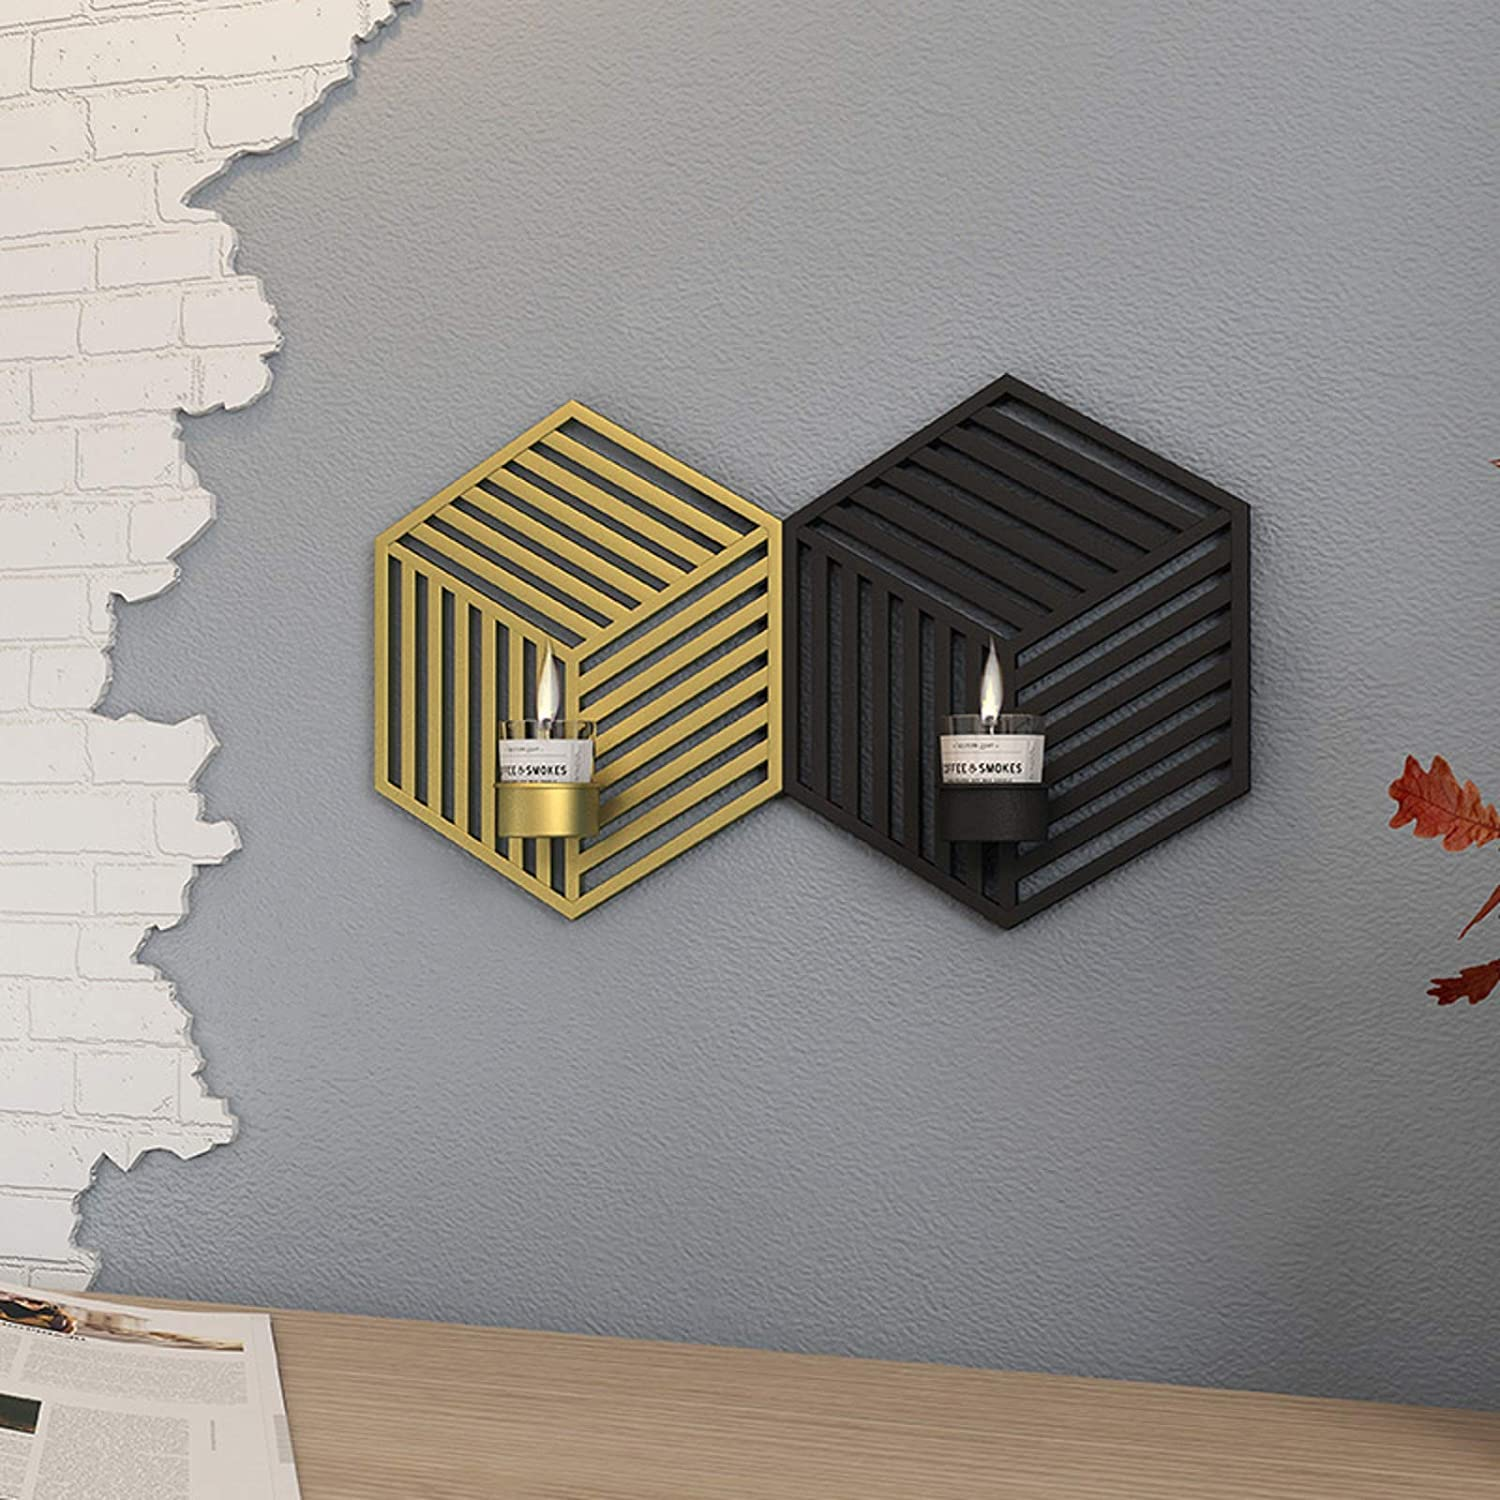 Domi-in Wall décor Home Decorations Living Room Decorations for Wall Decor Gold Black Candle sconces Holder for Wall Set of 2